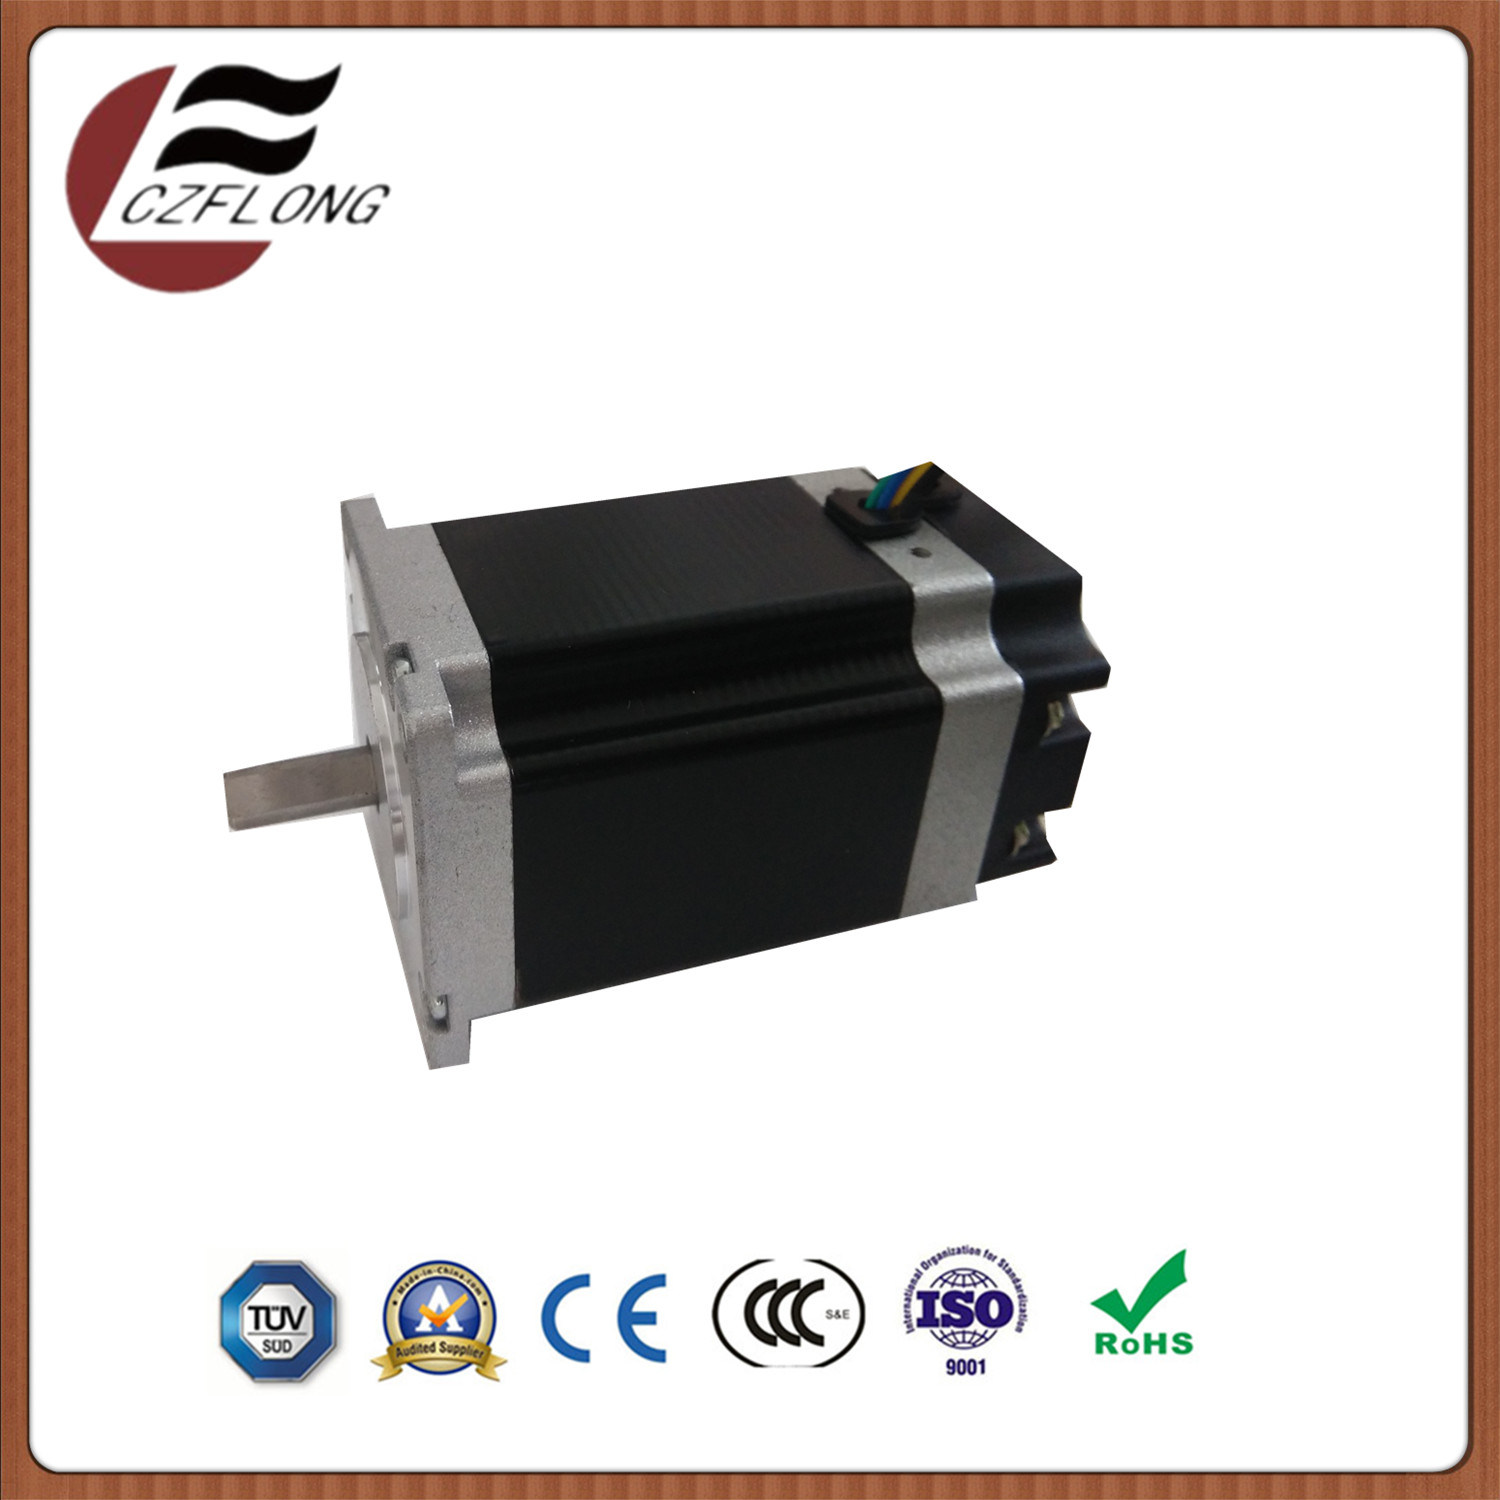 Small Noise 57*57mm NEMA23 Stepping Motor for Robot with RoHS